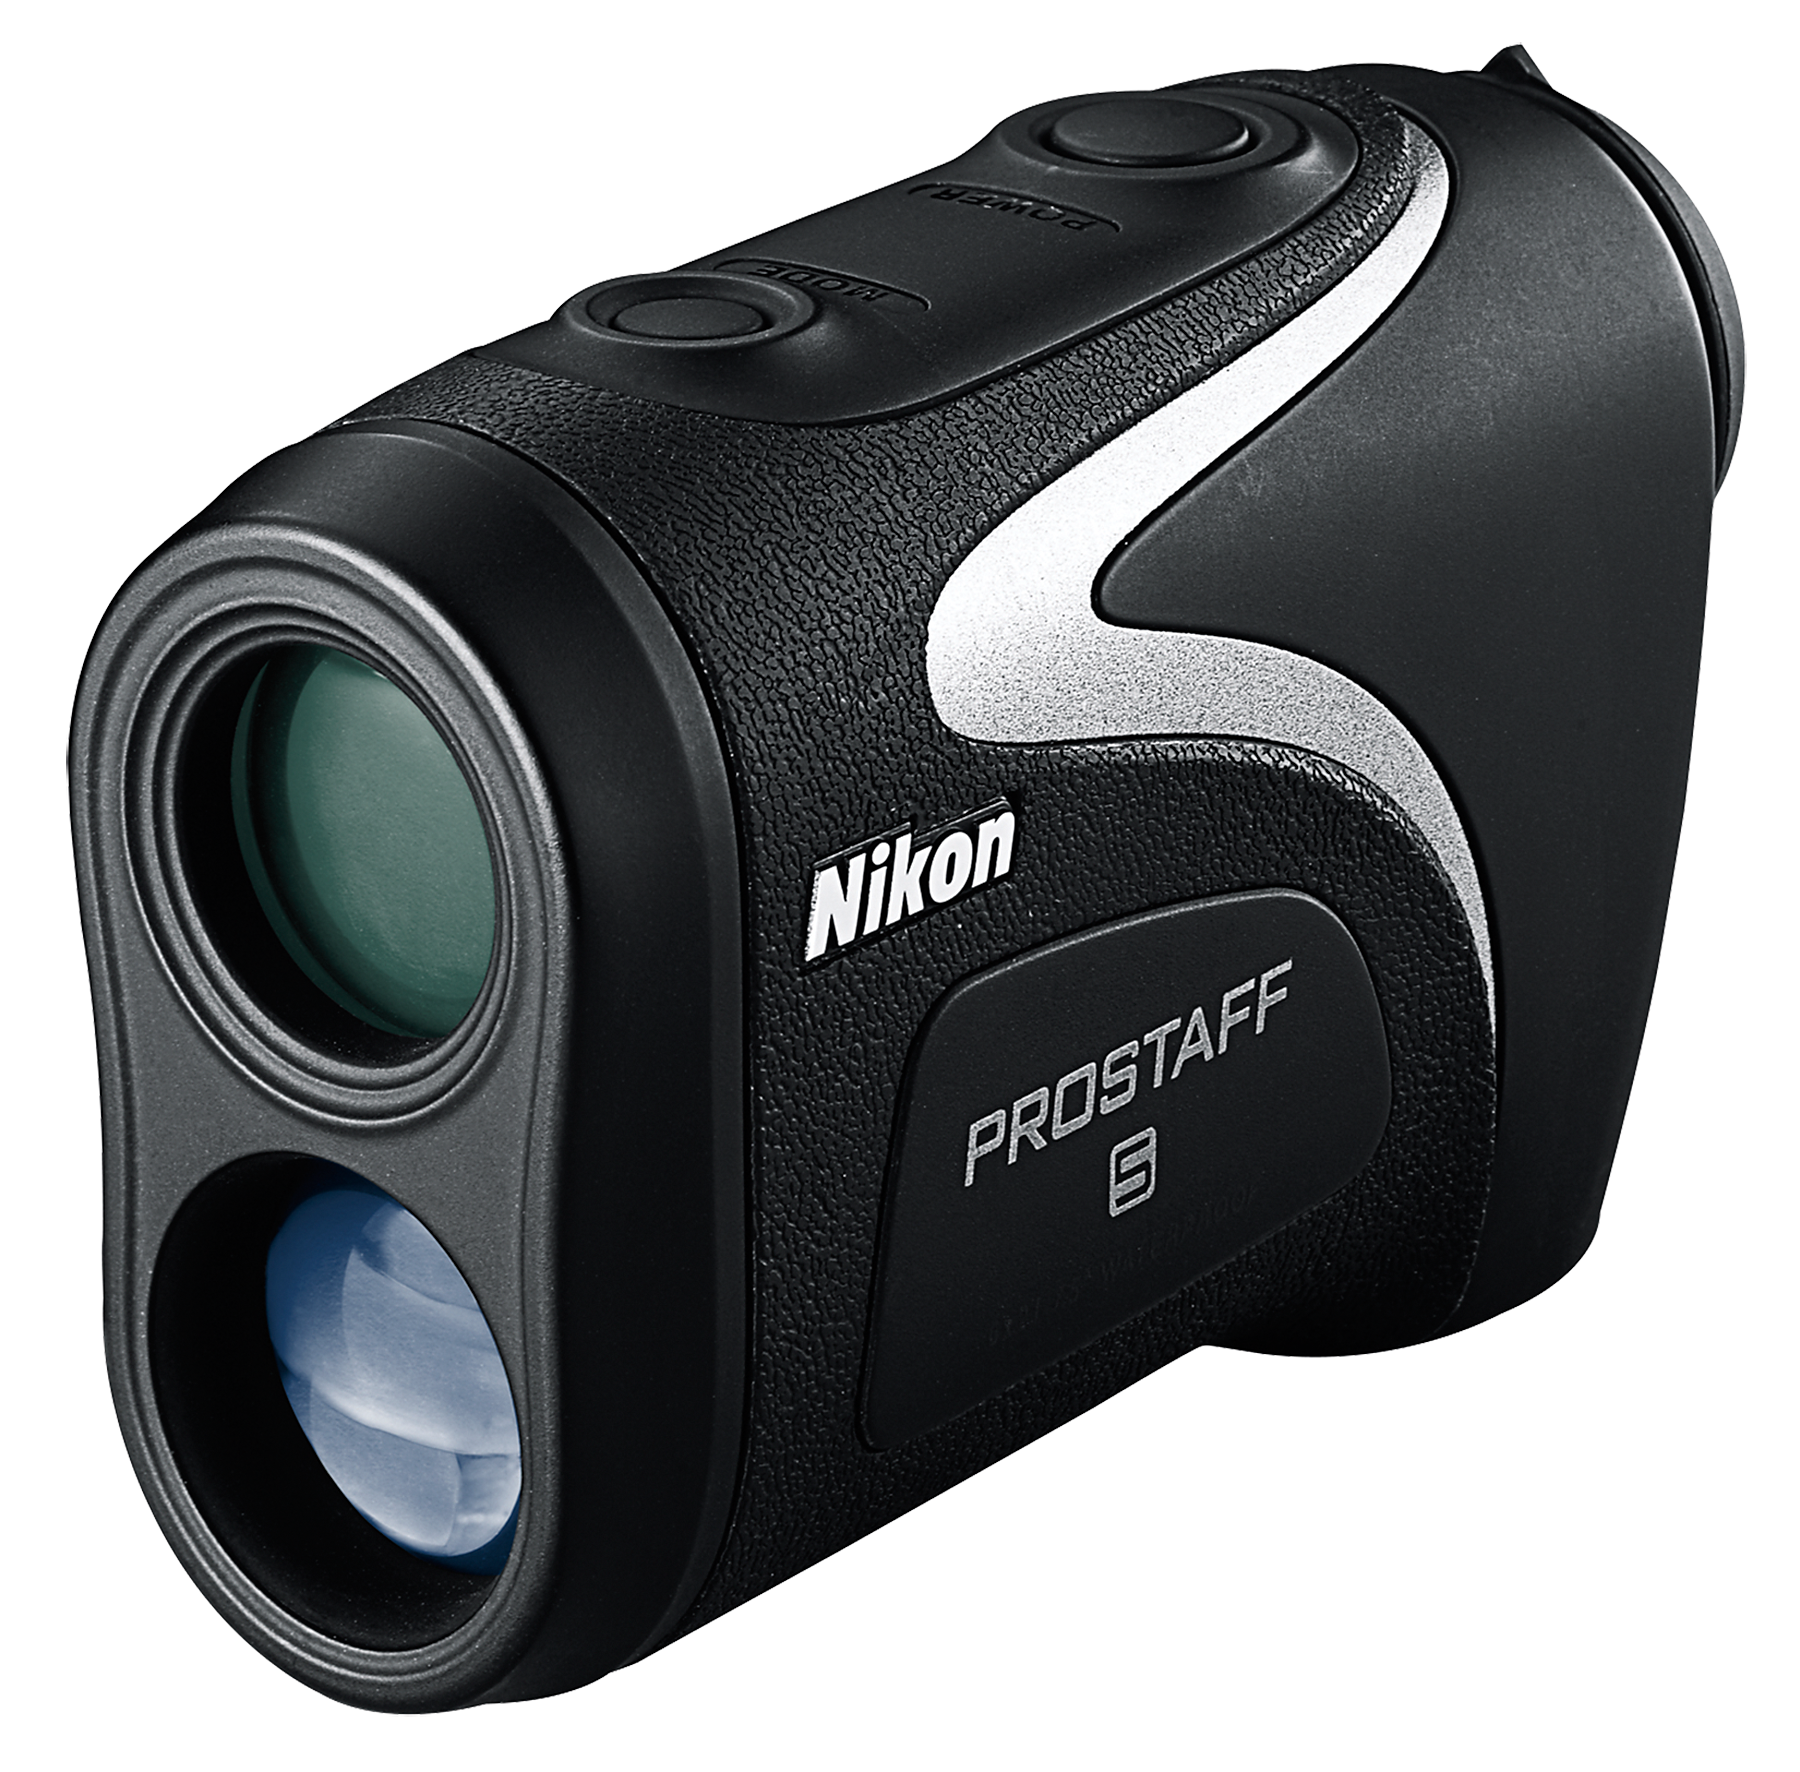 Nikon 8388 Prostaff 5 6x 21mm 7.5 degree FOV 18.3mm Black